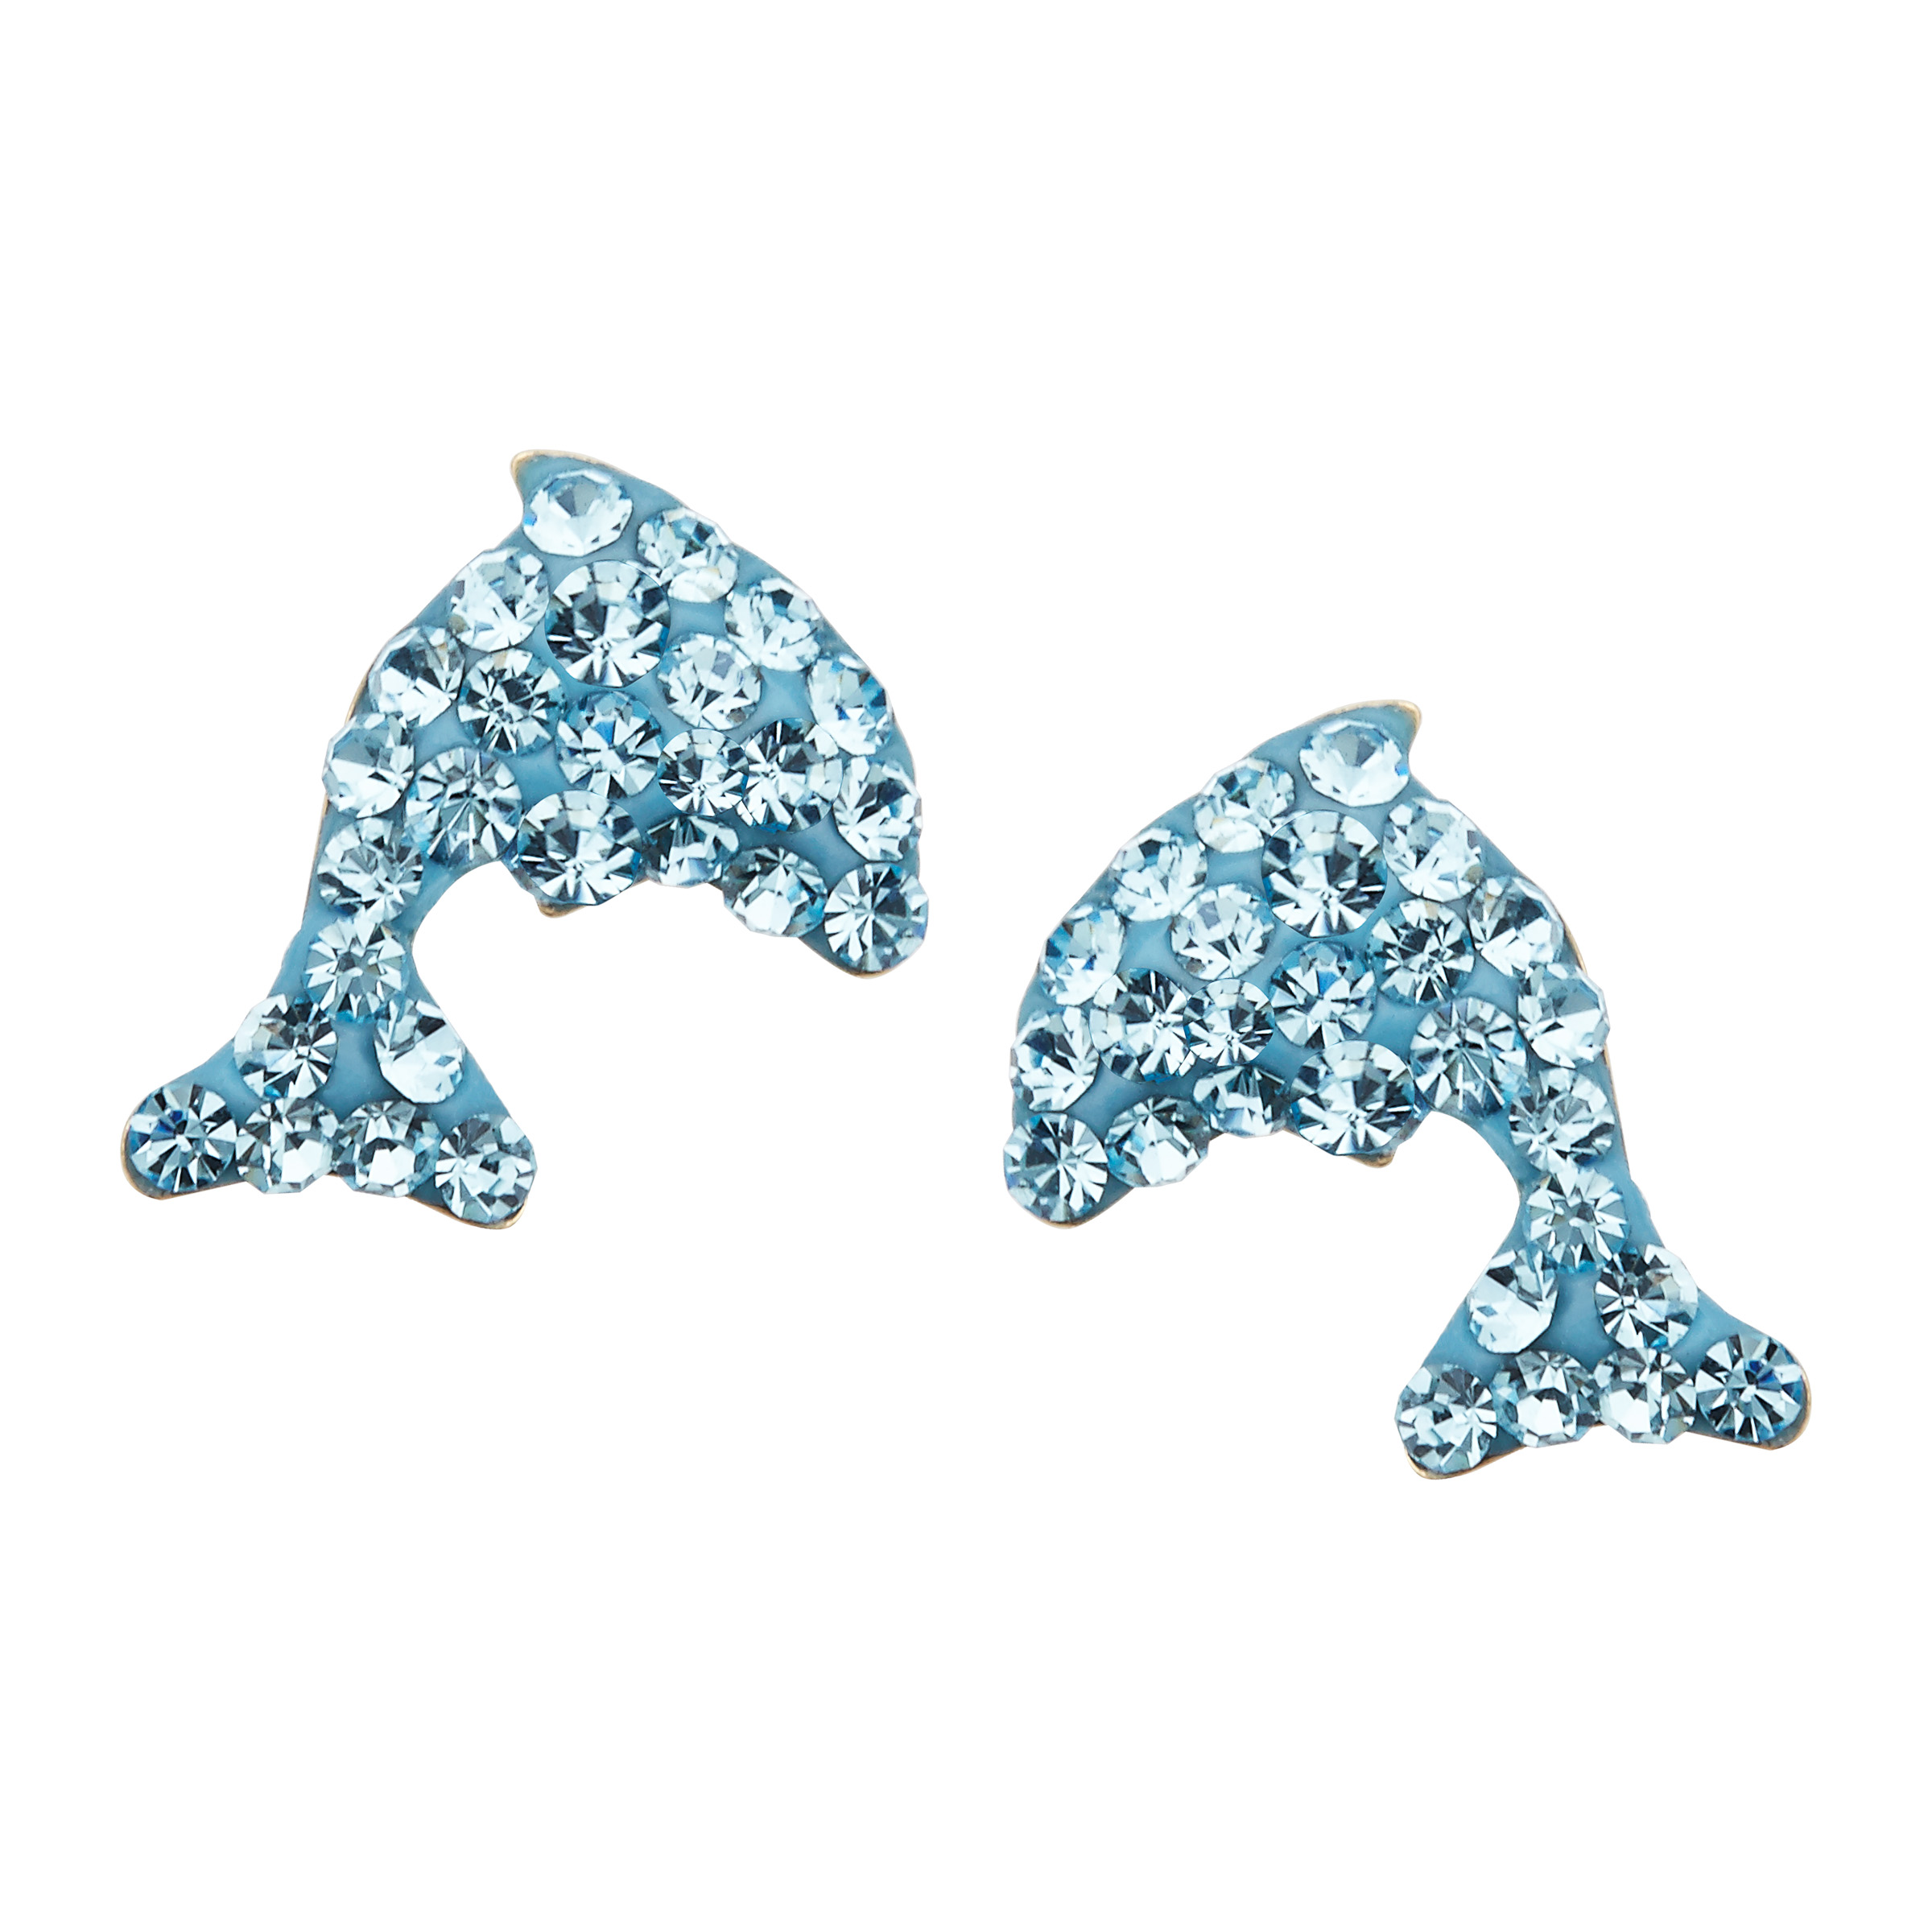 Dolphin Stud Drop Earrings with Sky Blue Swarovski Crystal in 14kt Gold